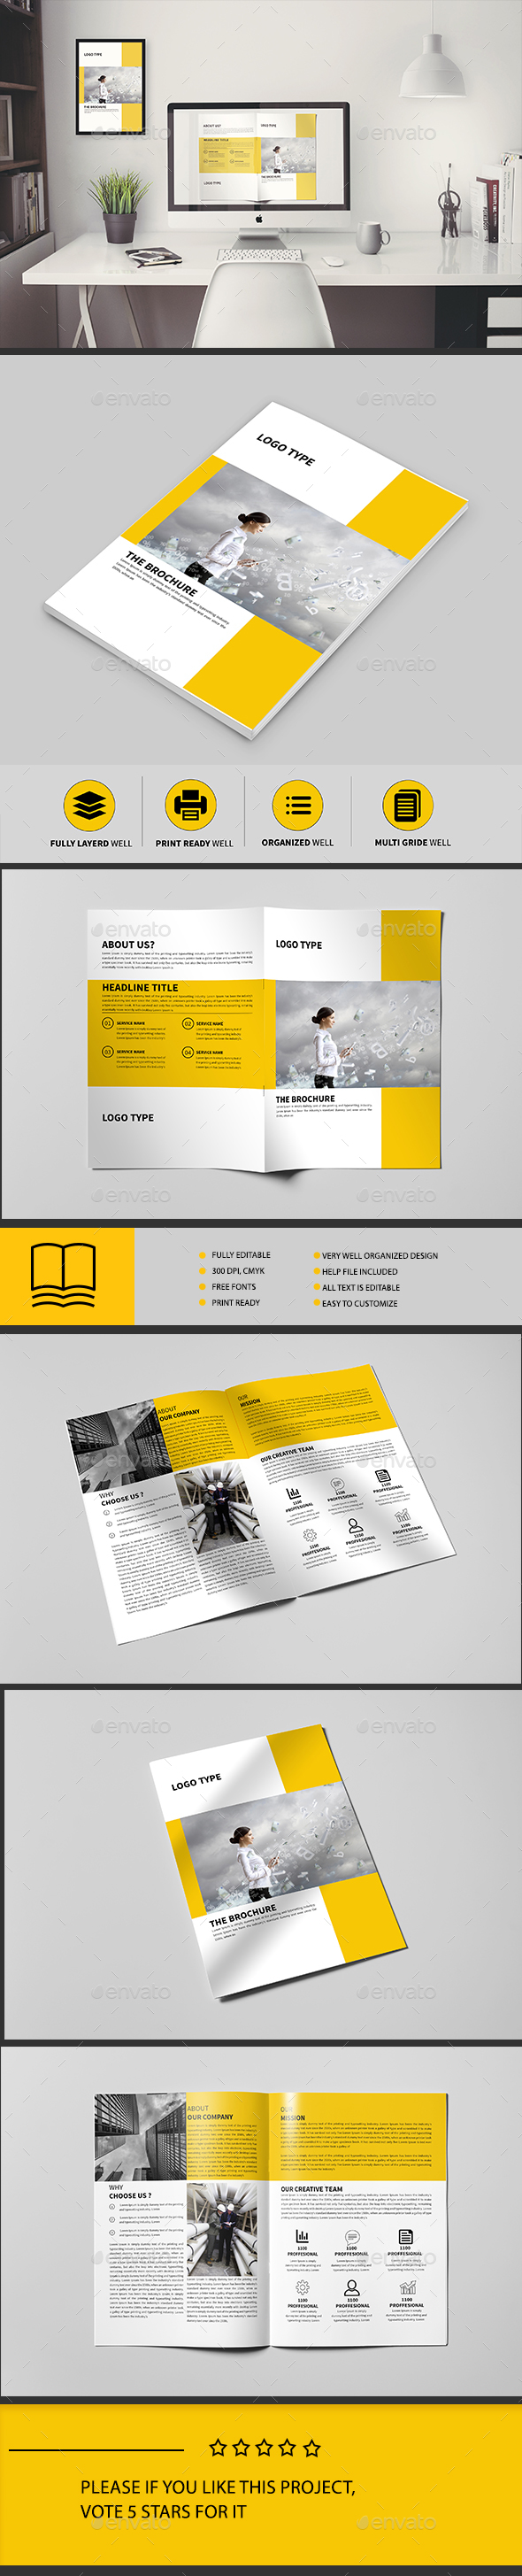 Corporate BiFold Brochure Brochure Template Brochures And - Bi fold brochure template indesign